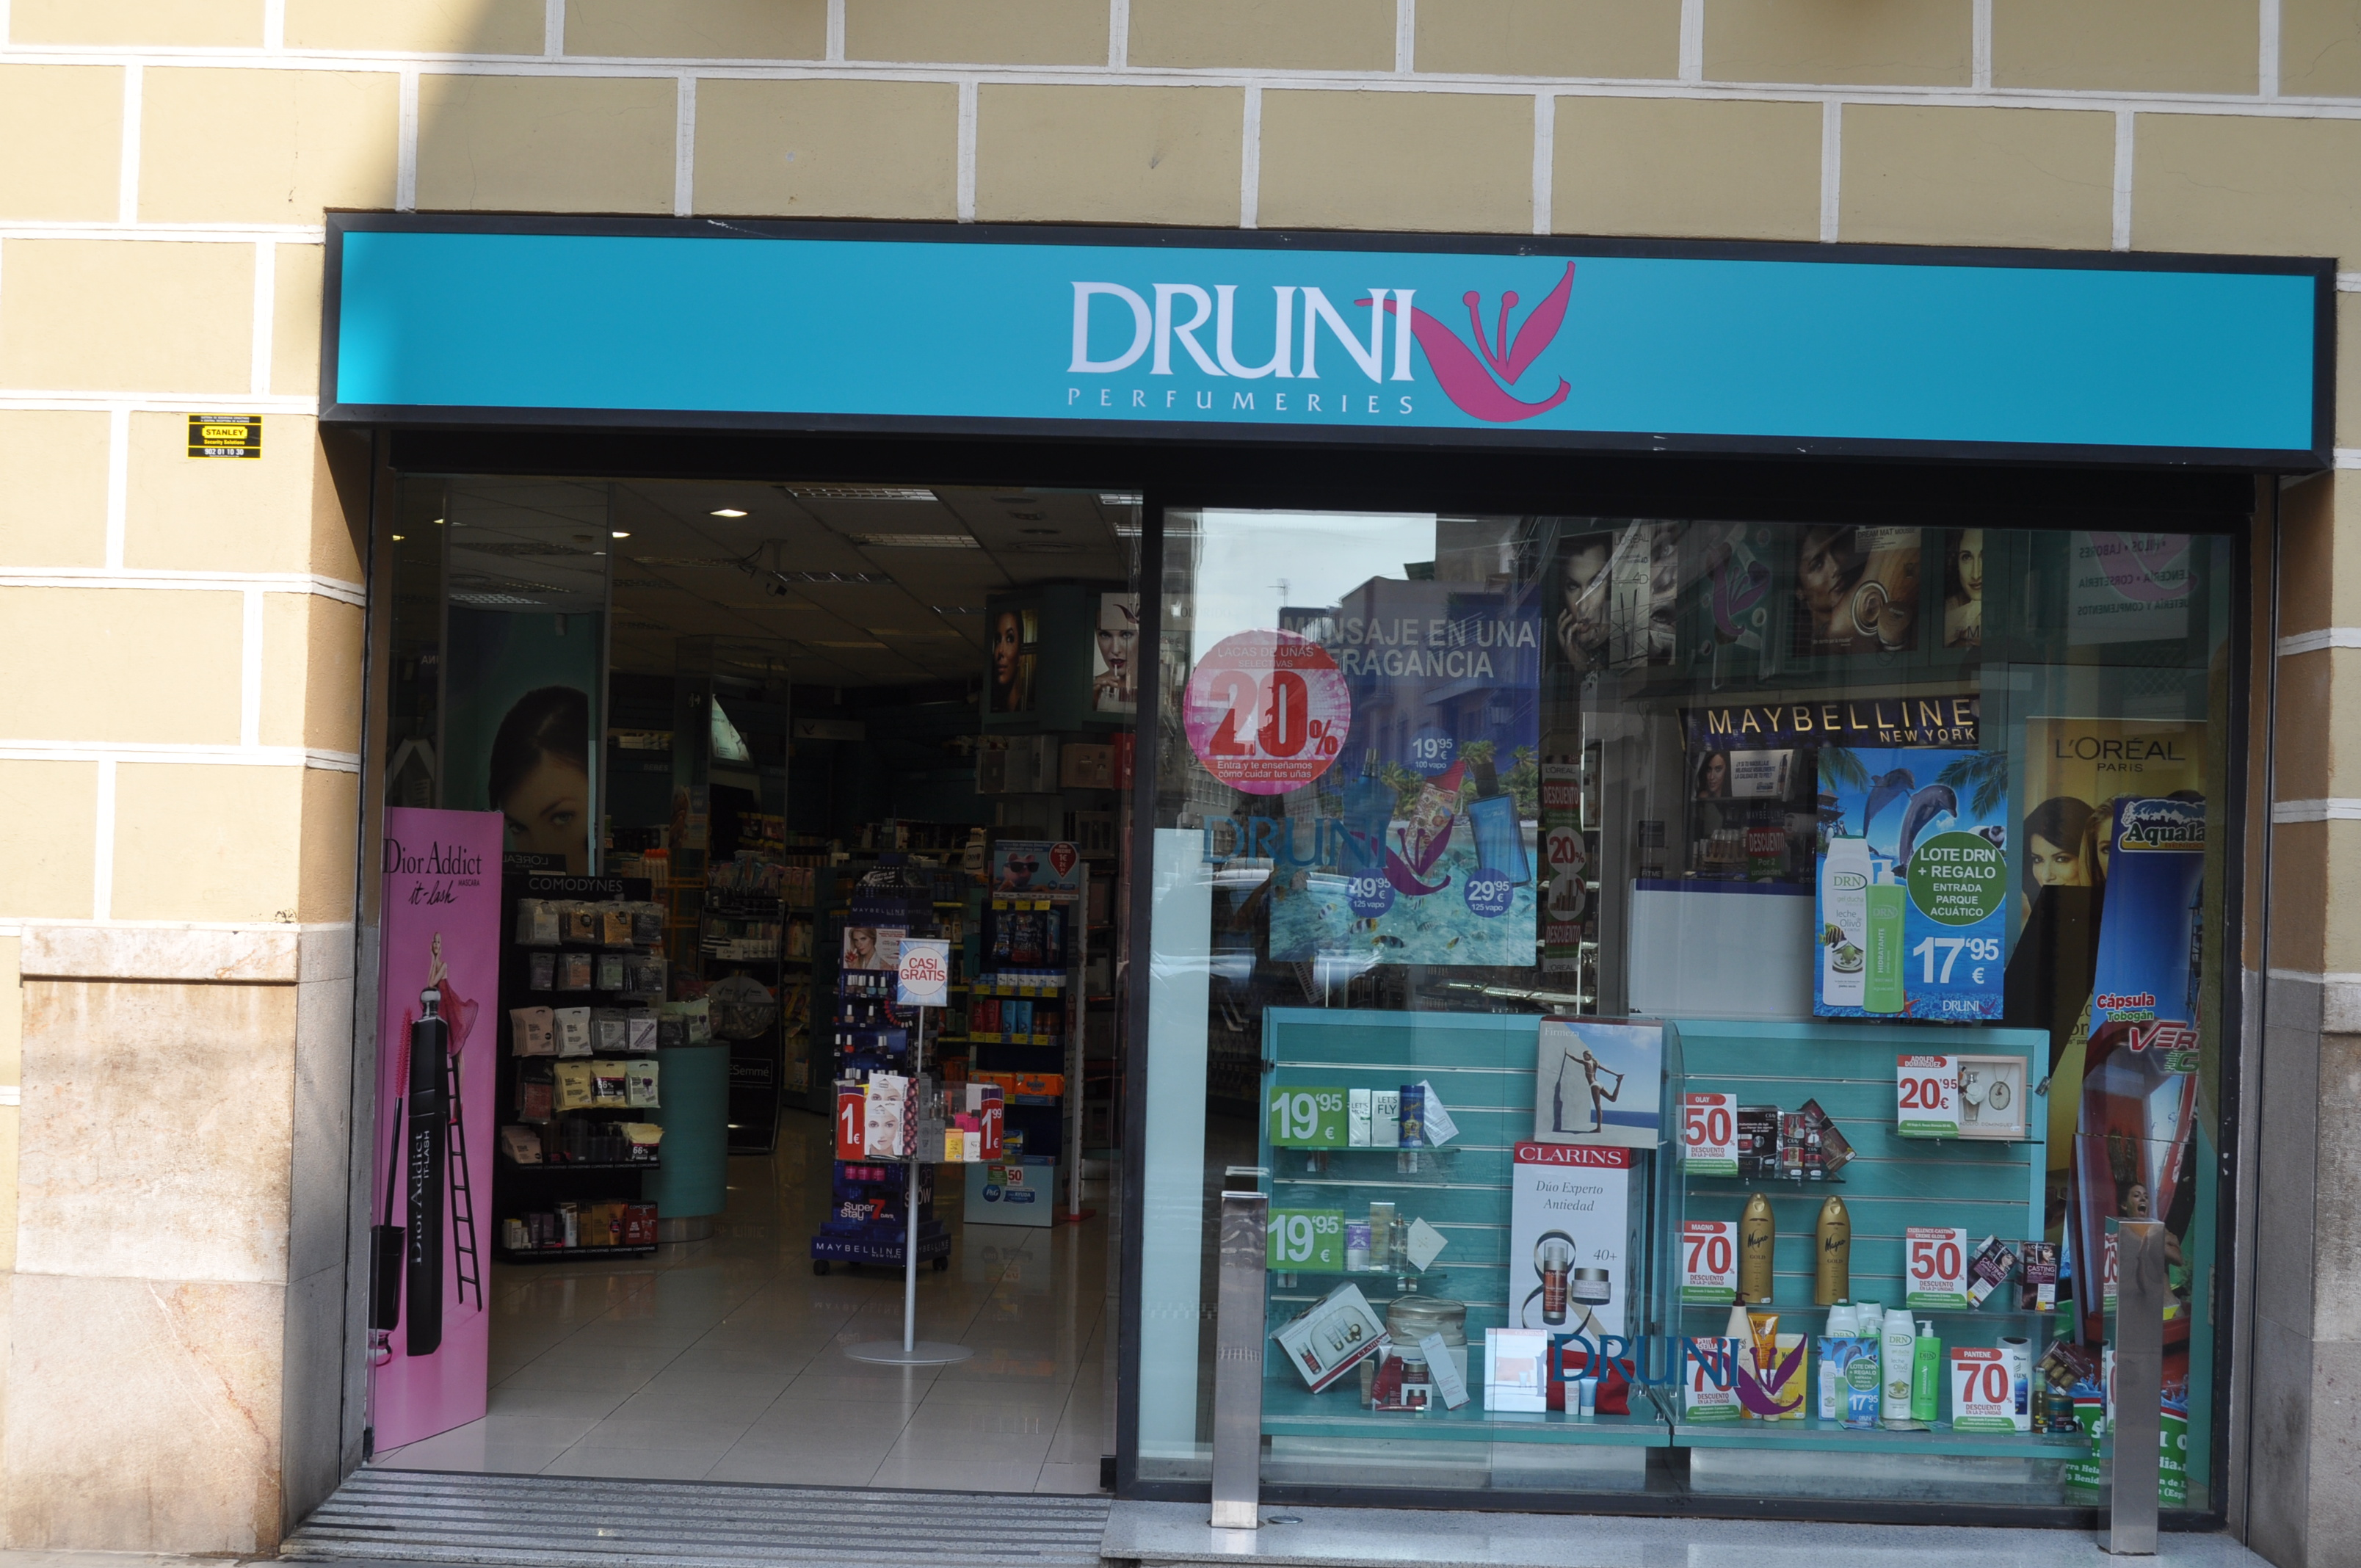 DRUNI PERFUMERIES